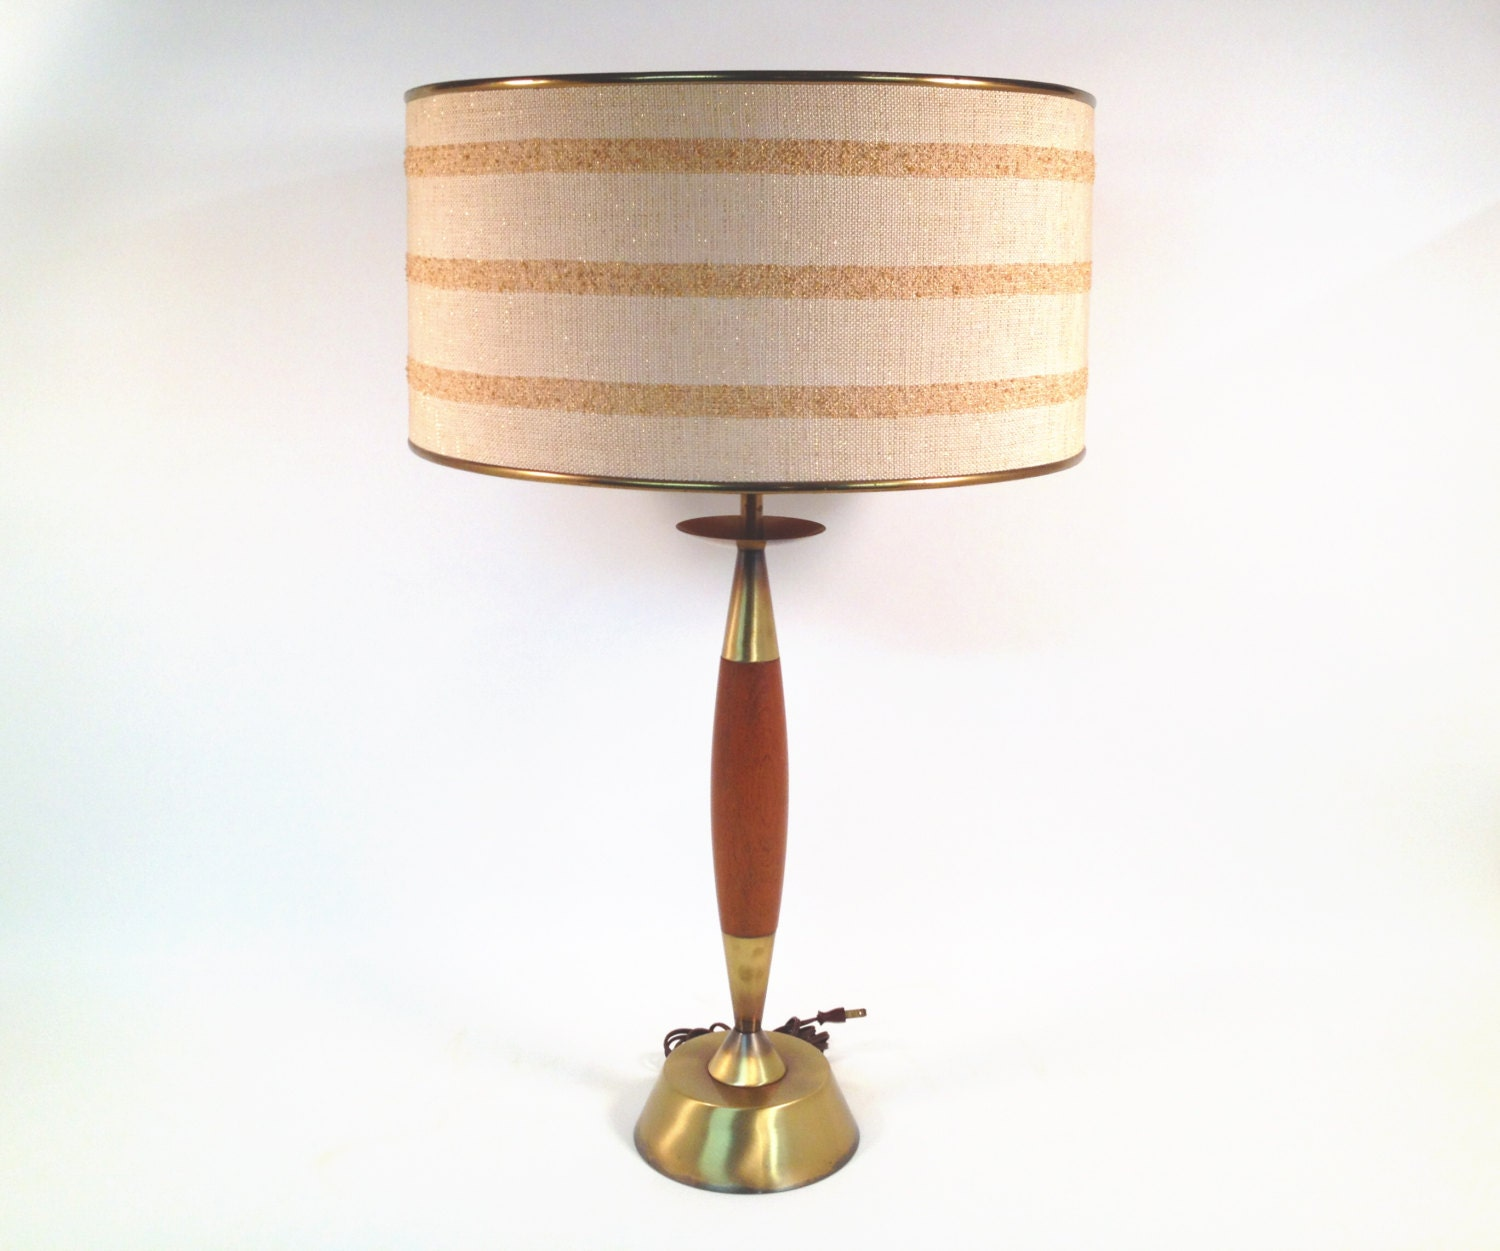 Mid Century Modern Table Lamp By Rembrandt With Drum Shade And